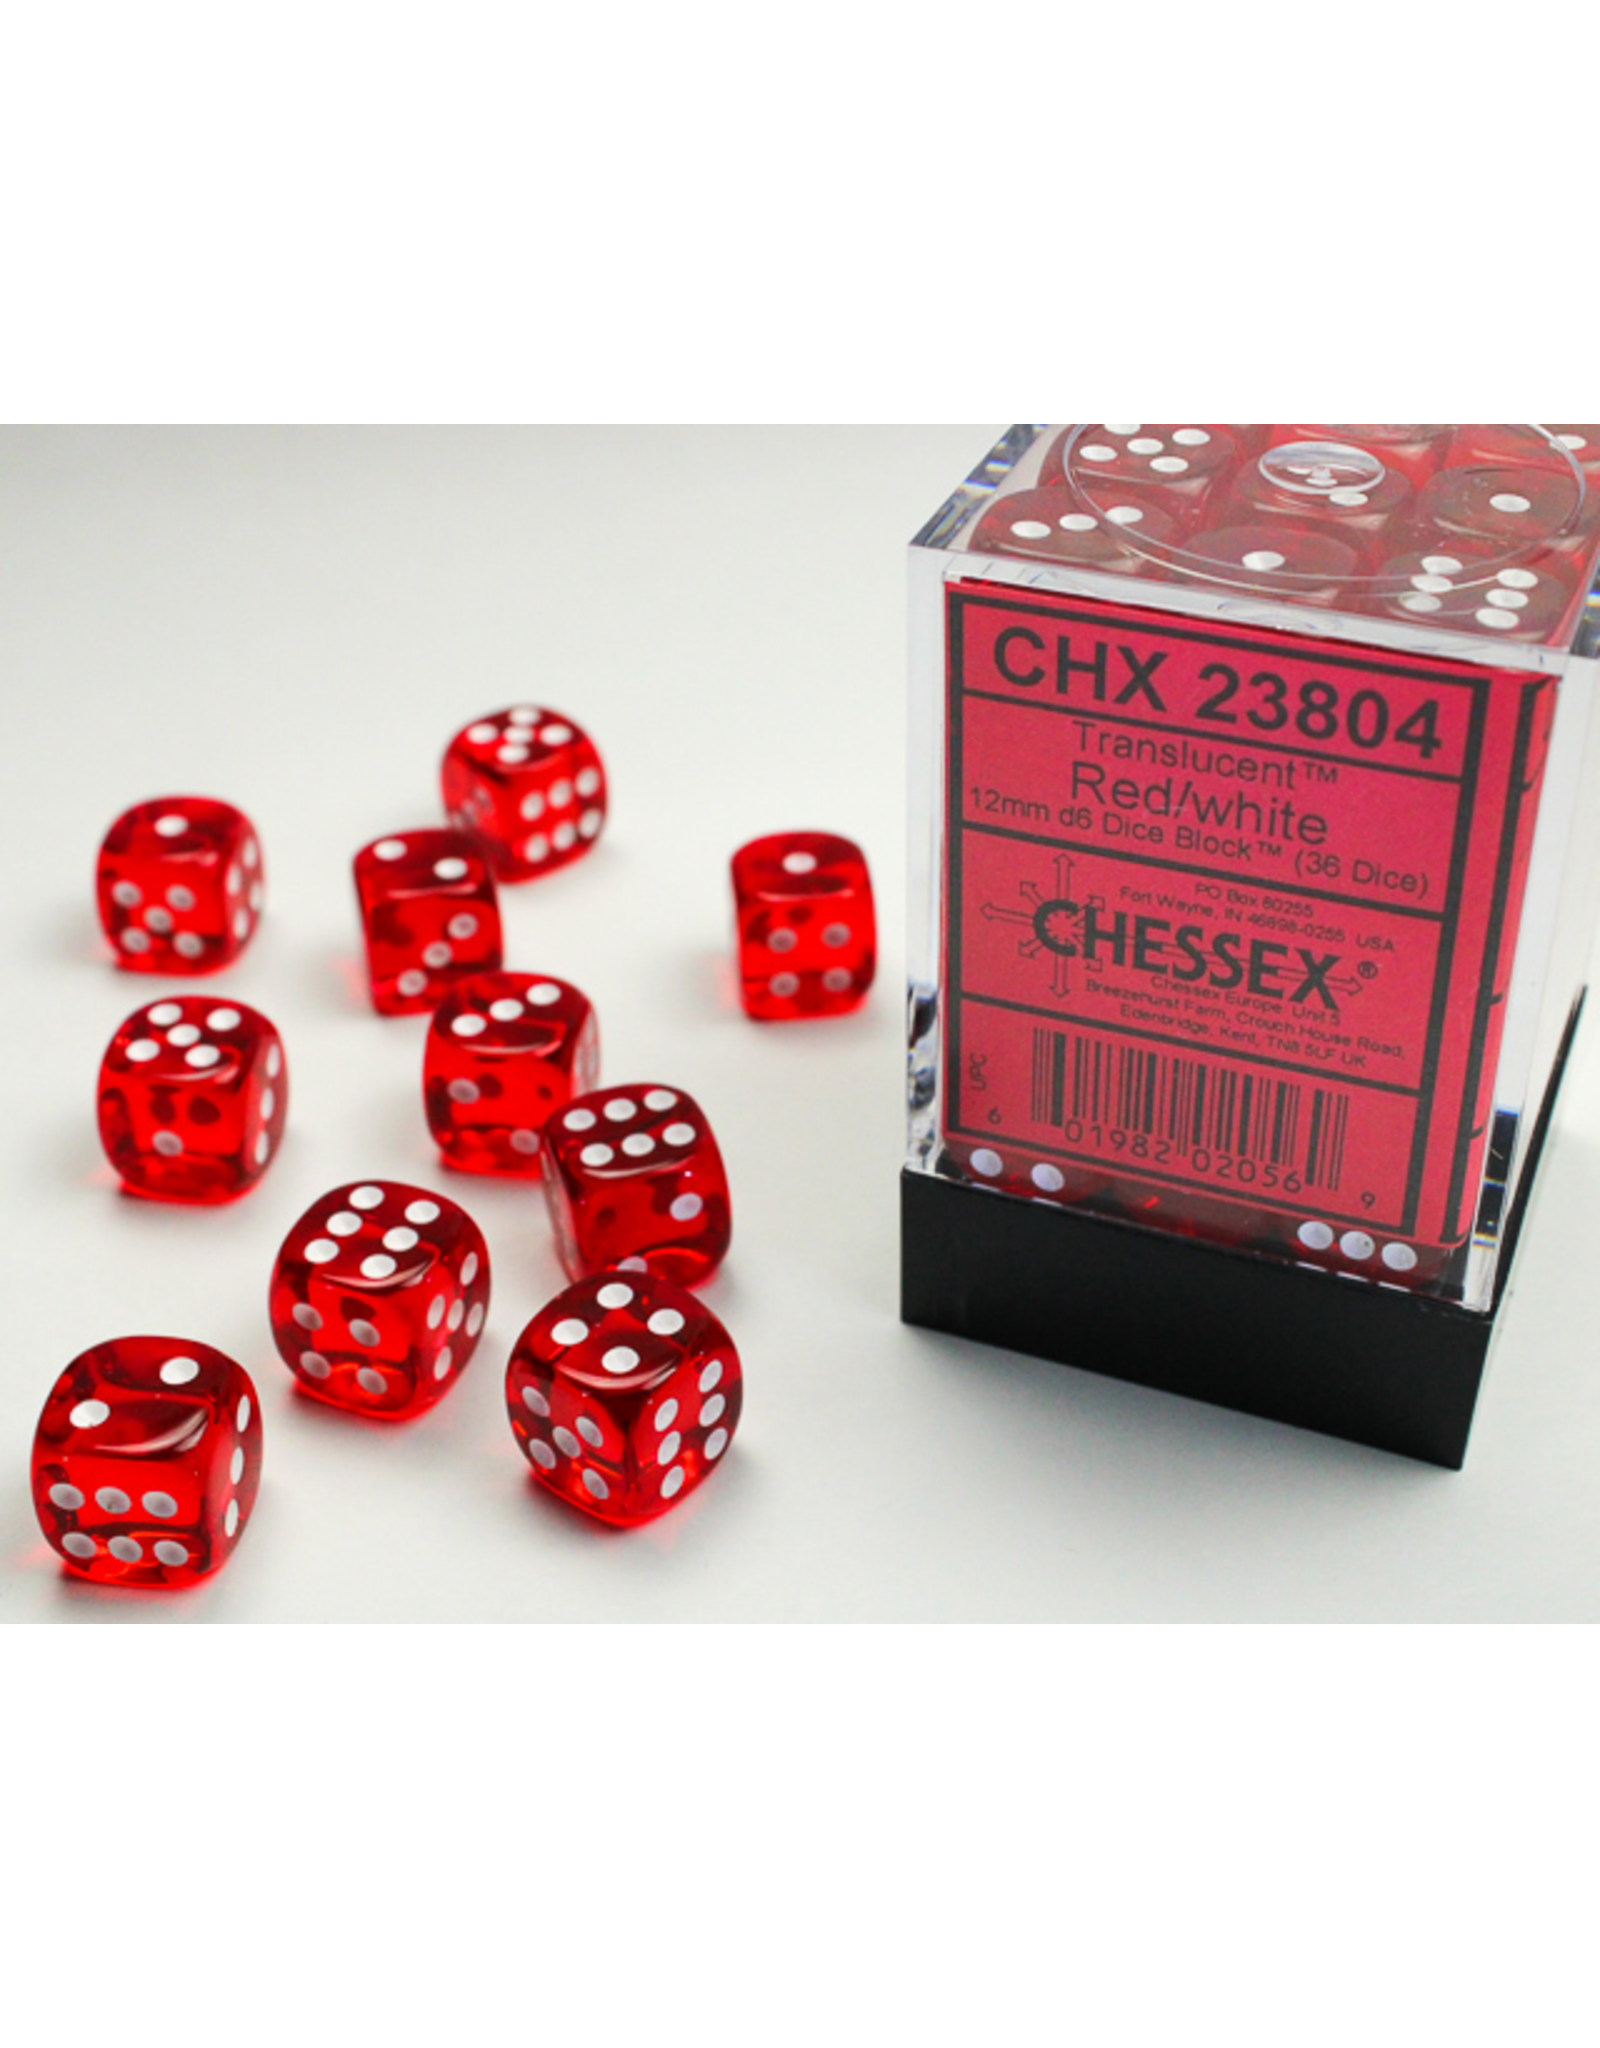 Chessex Dice: D6 Cube 12mm Translucent Red with White Pips (CHX)